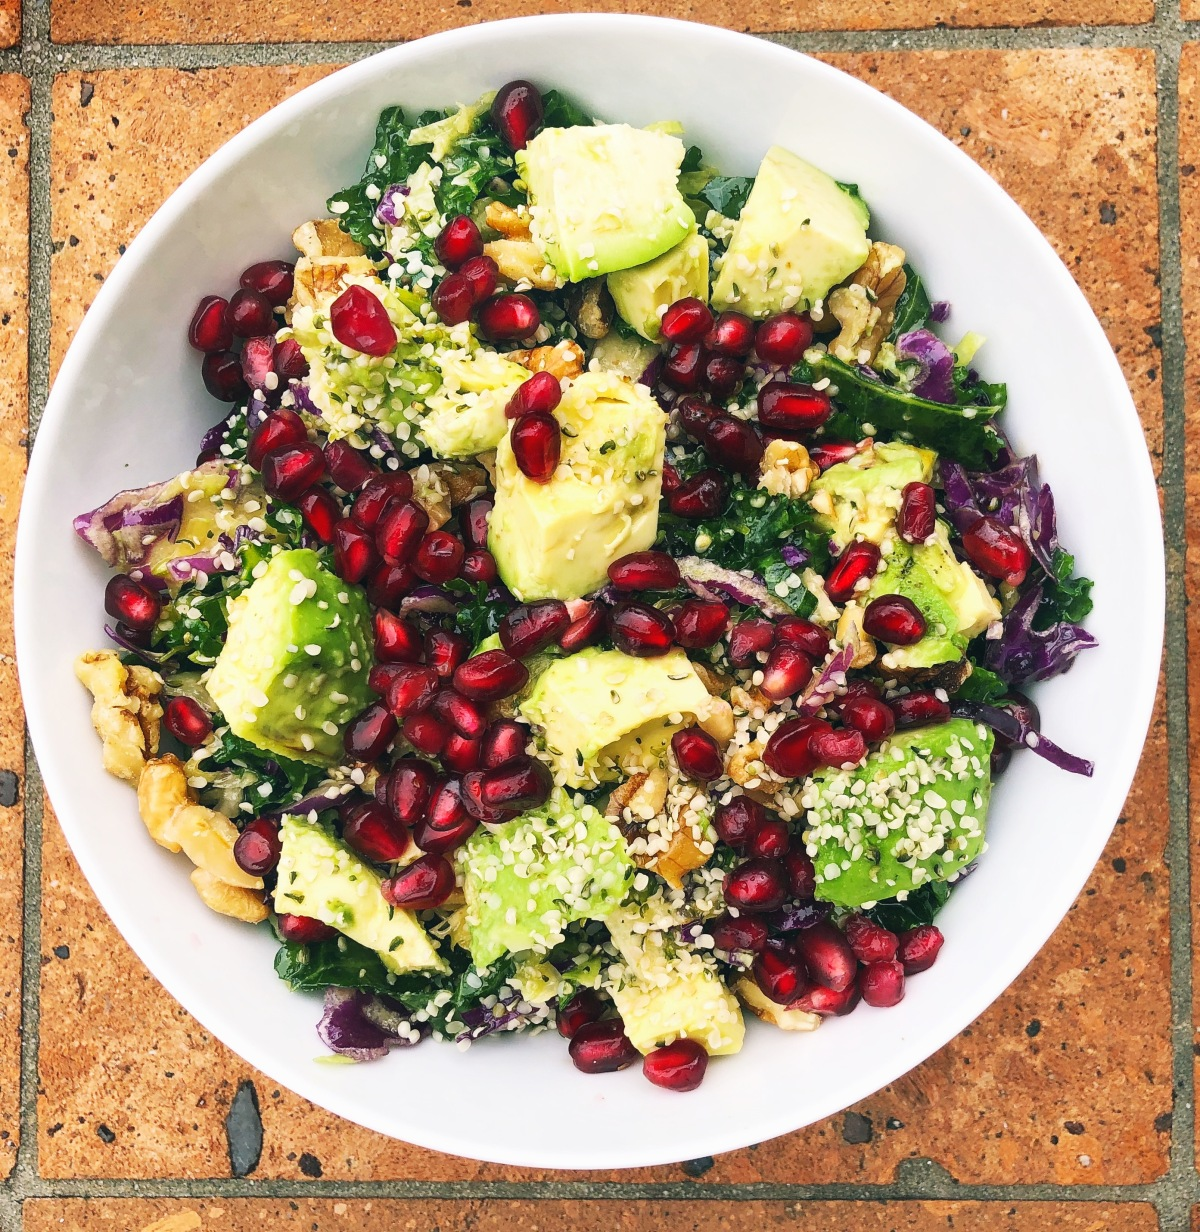 Kale Tahini Salad with Avocado, Pomegranate, and Walnuts